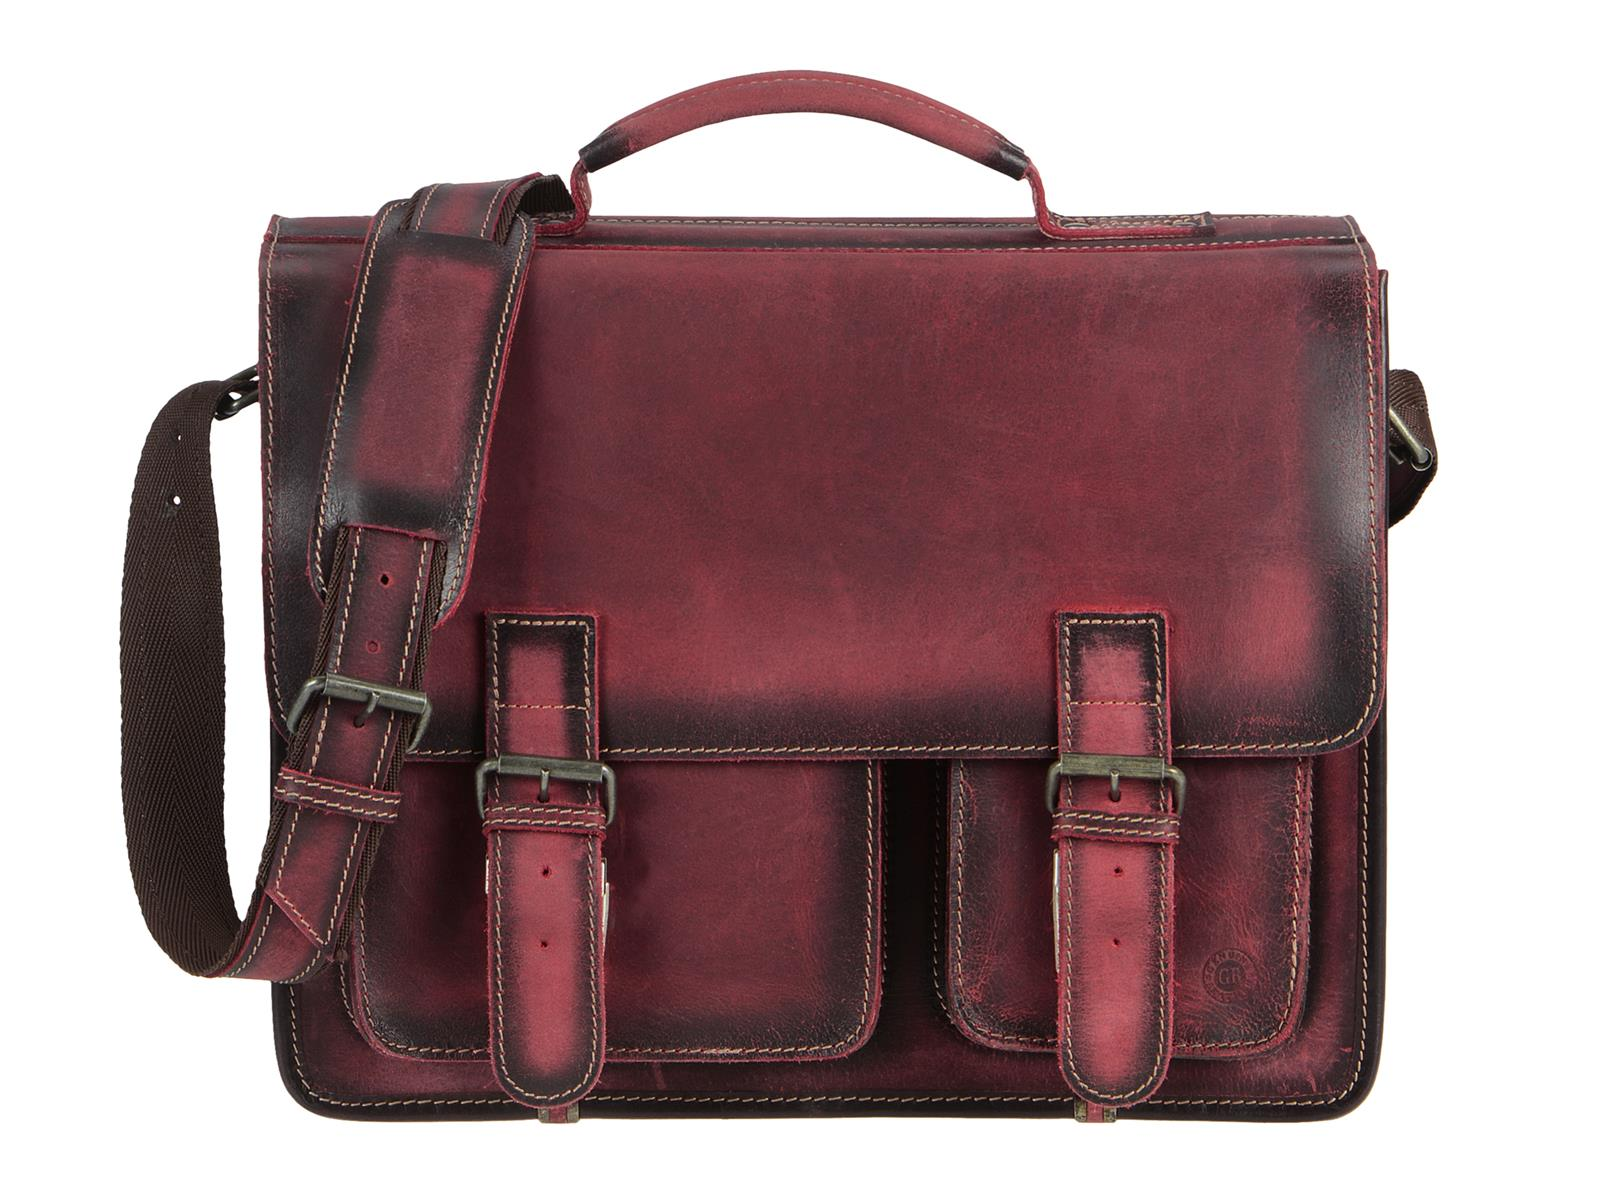 Greenburry Lehrertasche Leder Aktentasche in rot (teak red) 1028B-26